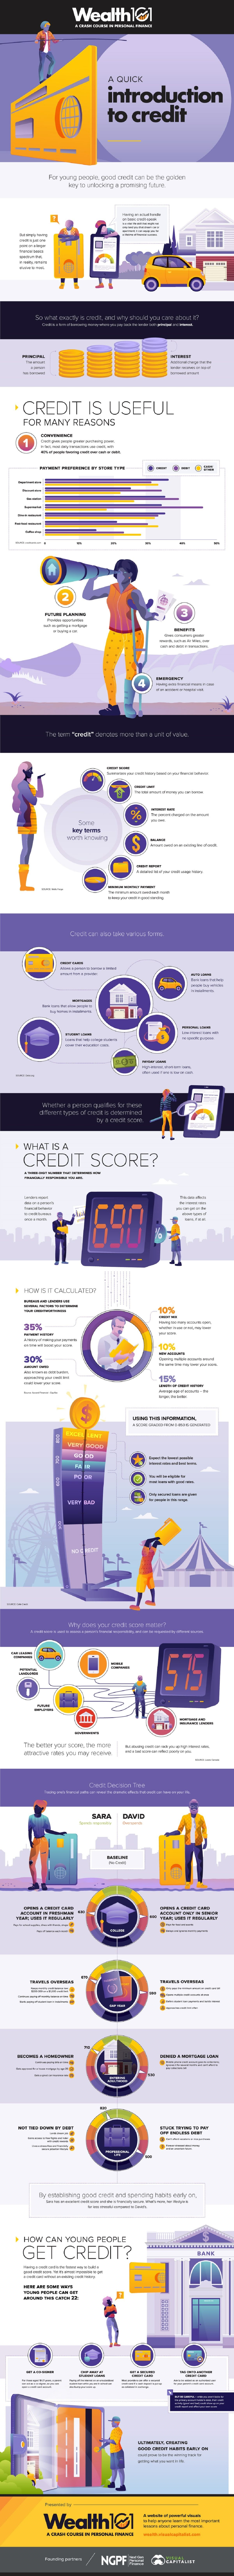 what-young-people-need-to-know-about-credit-infographic